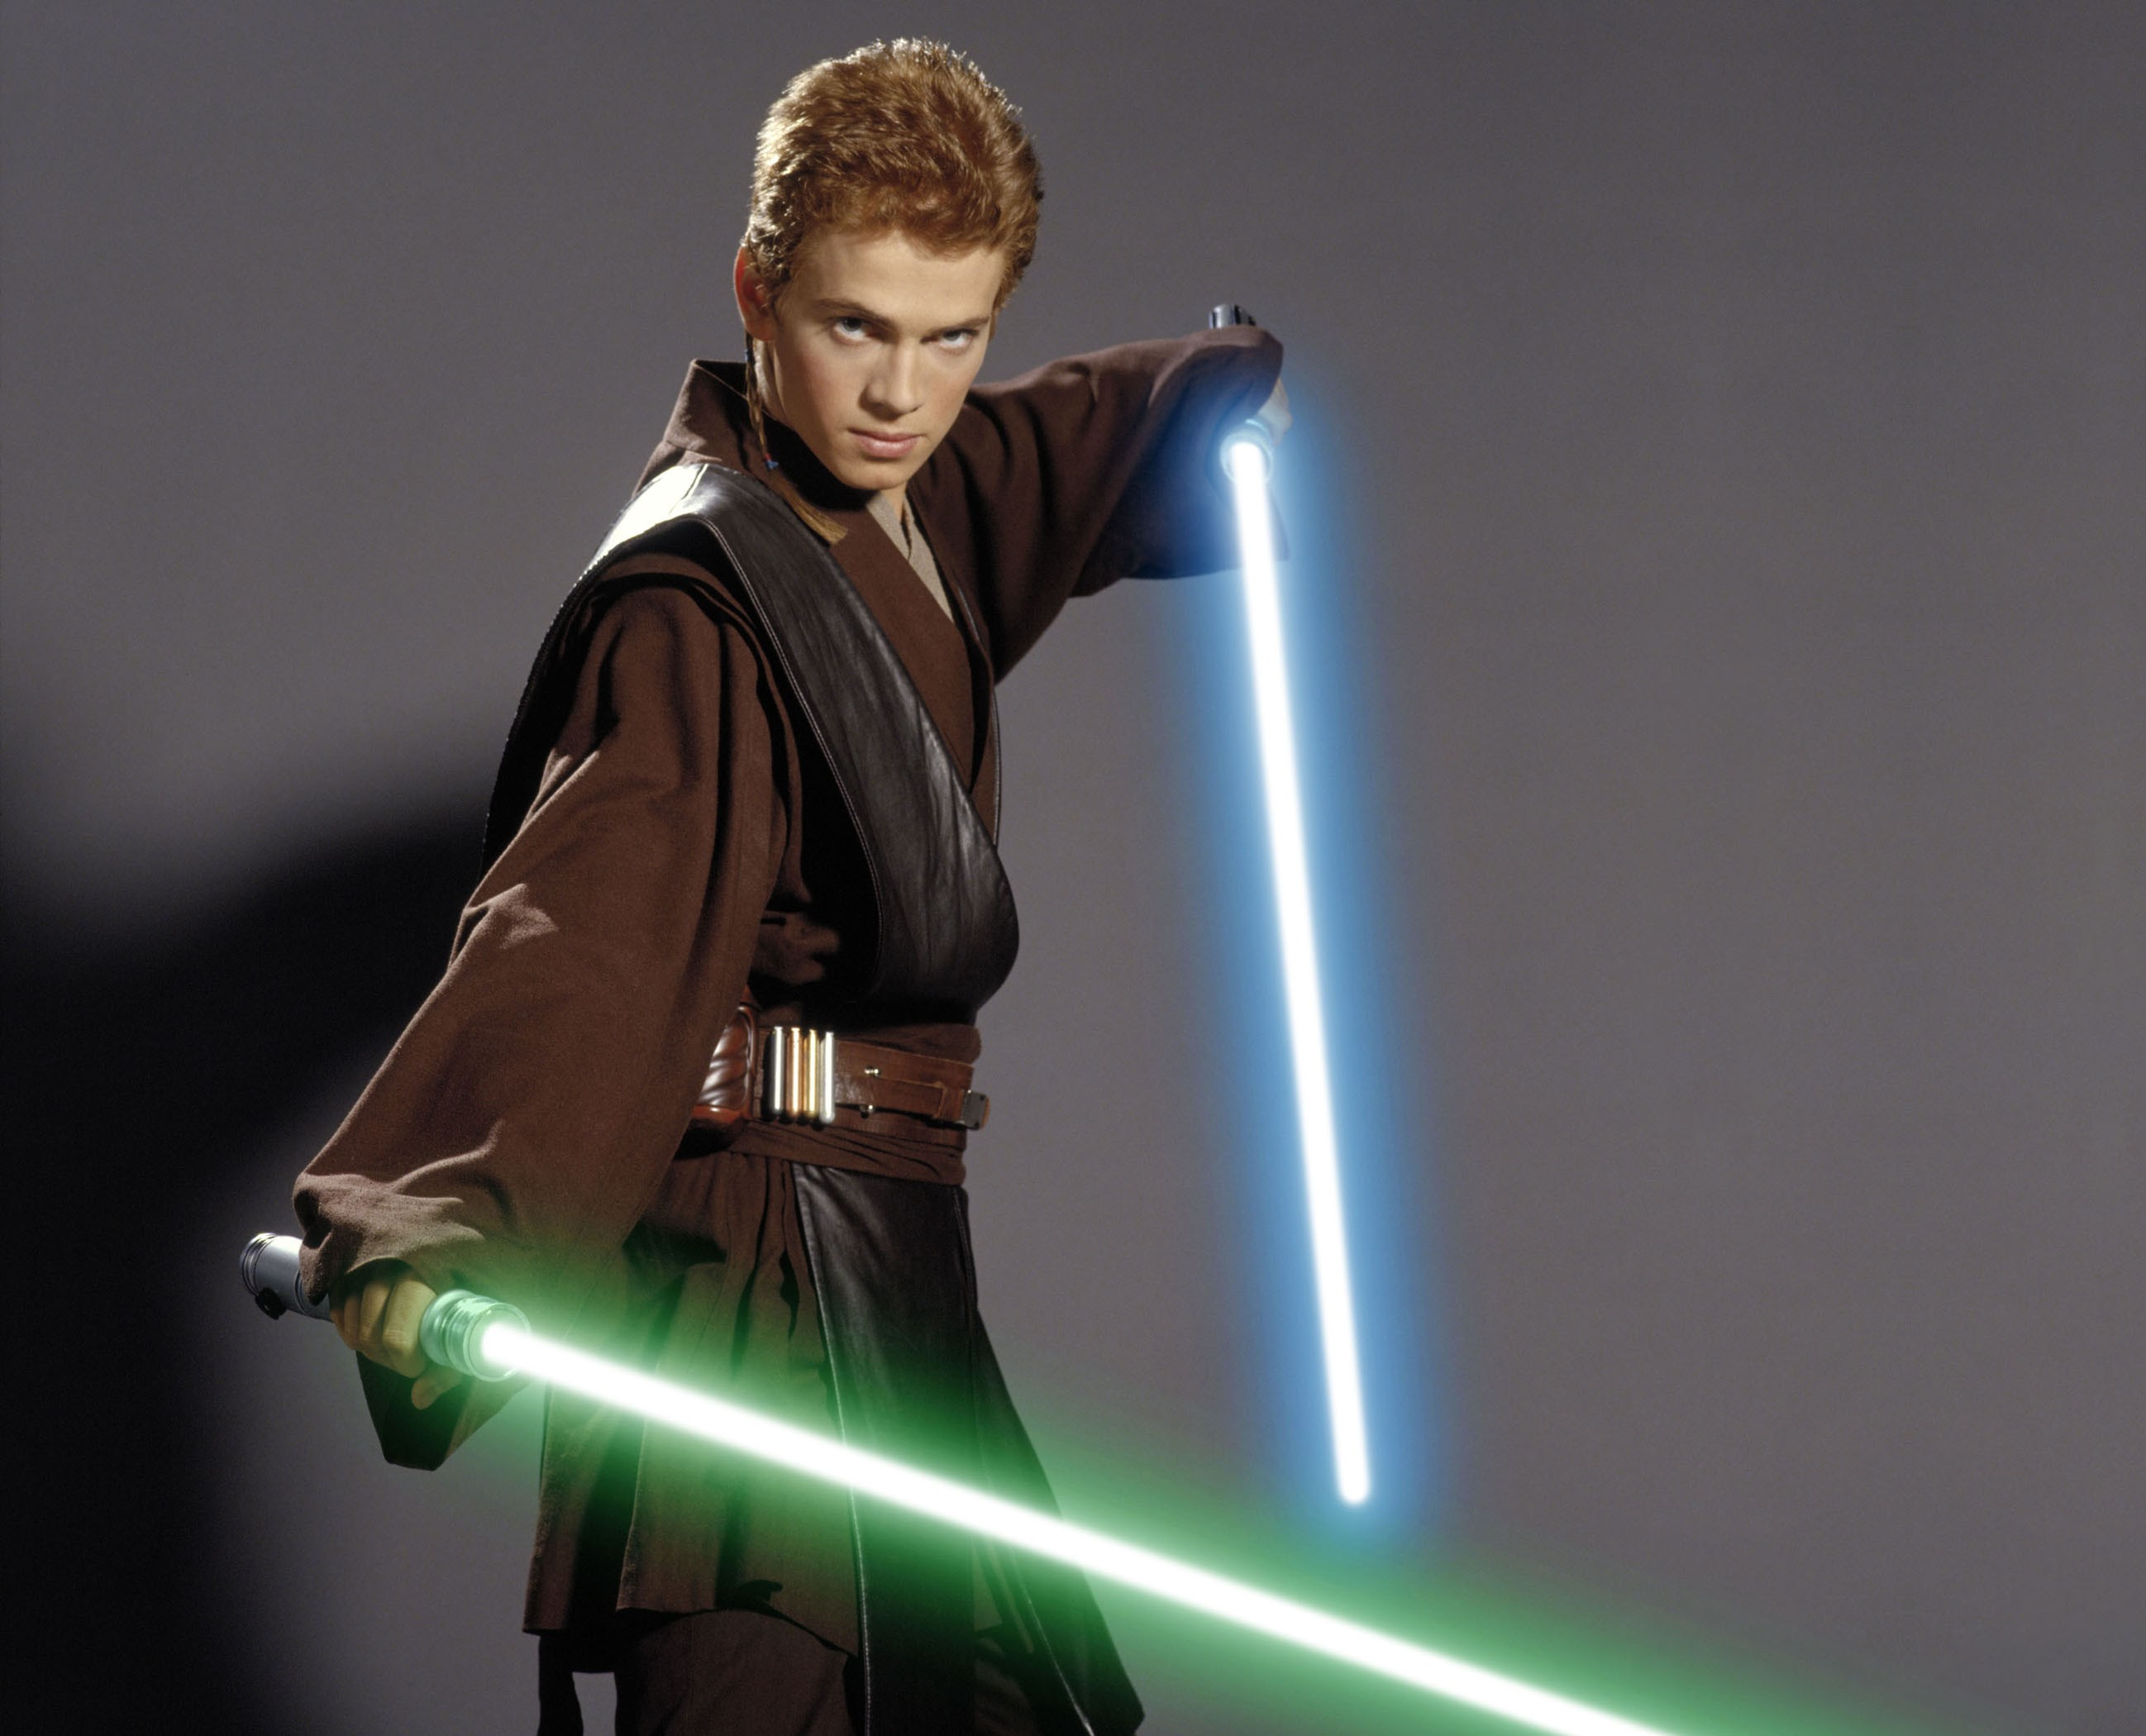 Anakin Skywalker Jedi 4 Reasons Why Kylo Ren Is Anakin As We Should Have Seen